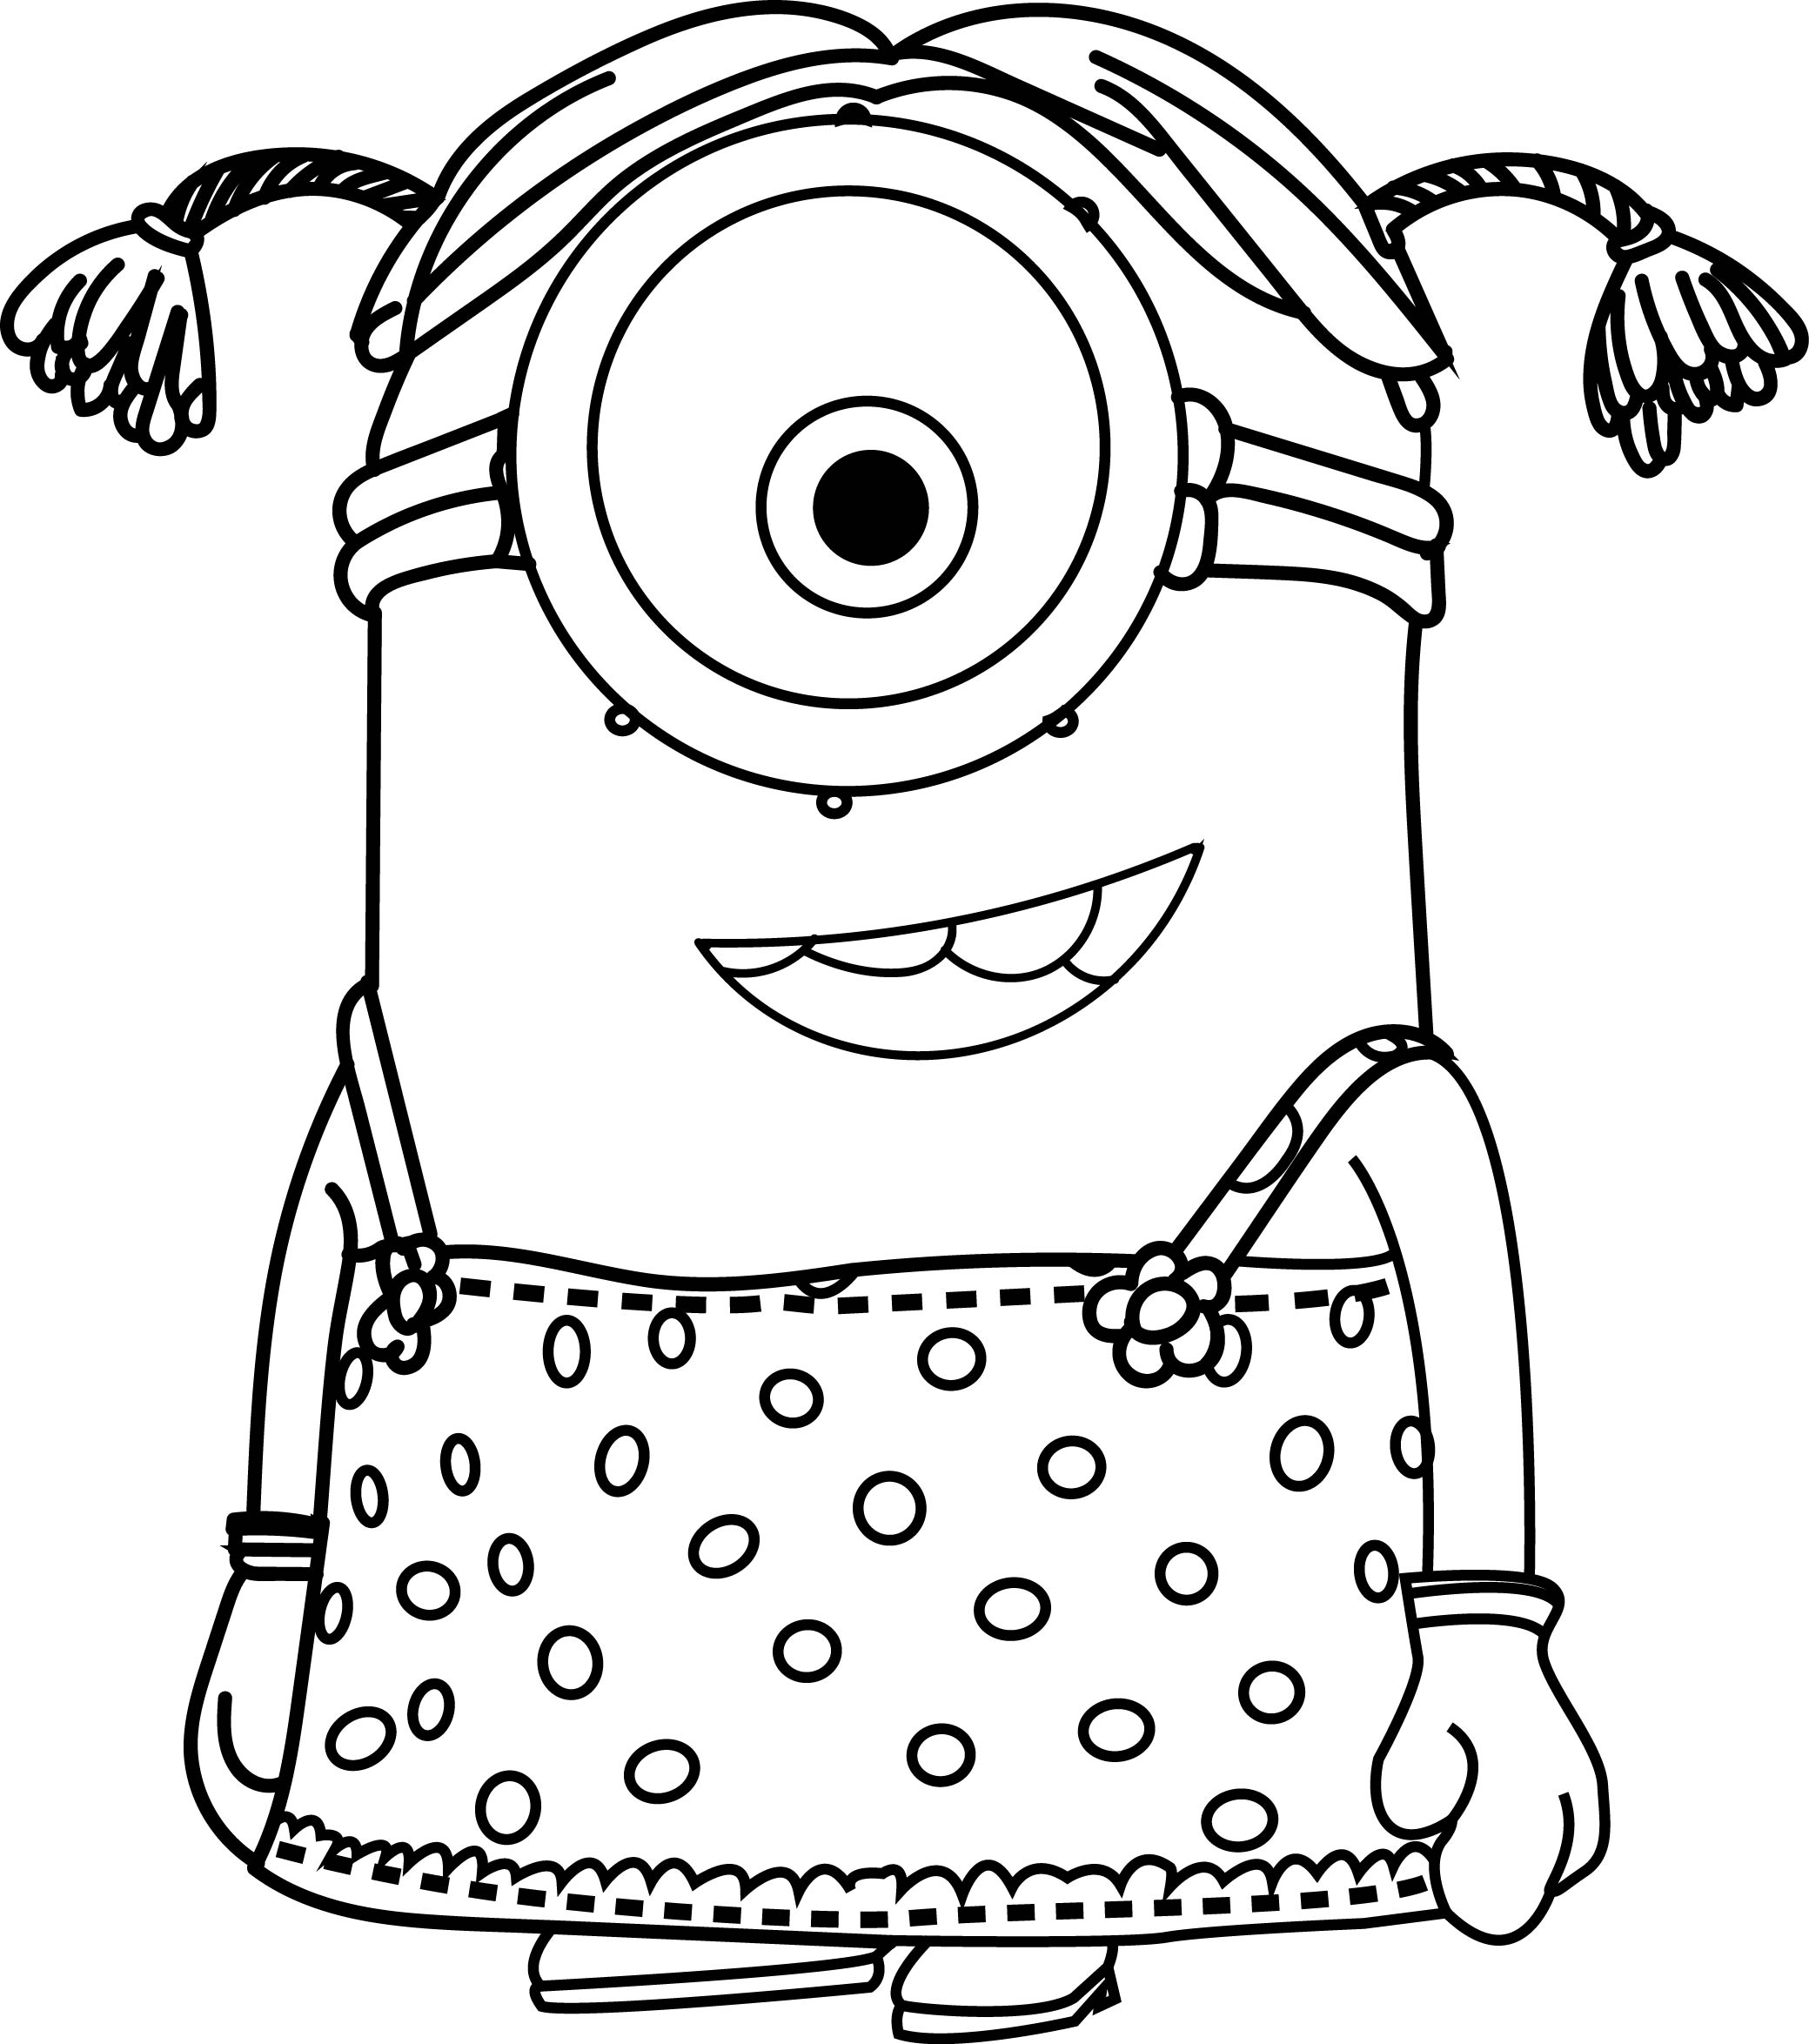 little girl coloring pages - cartoons minions little girl coloring page